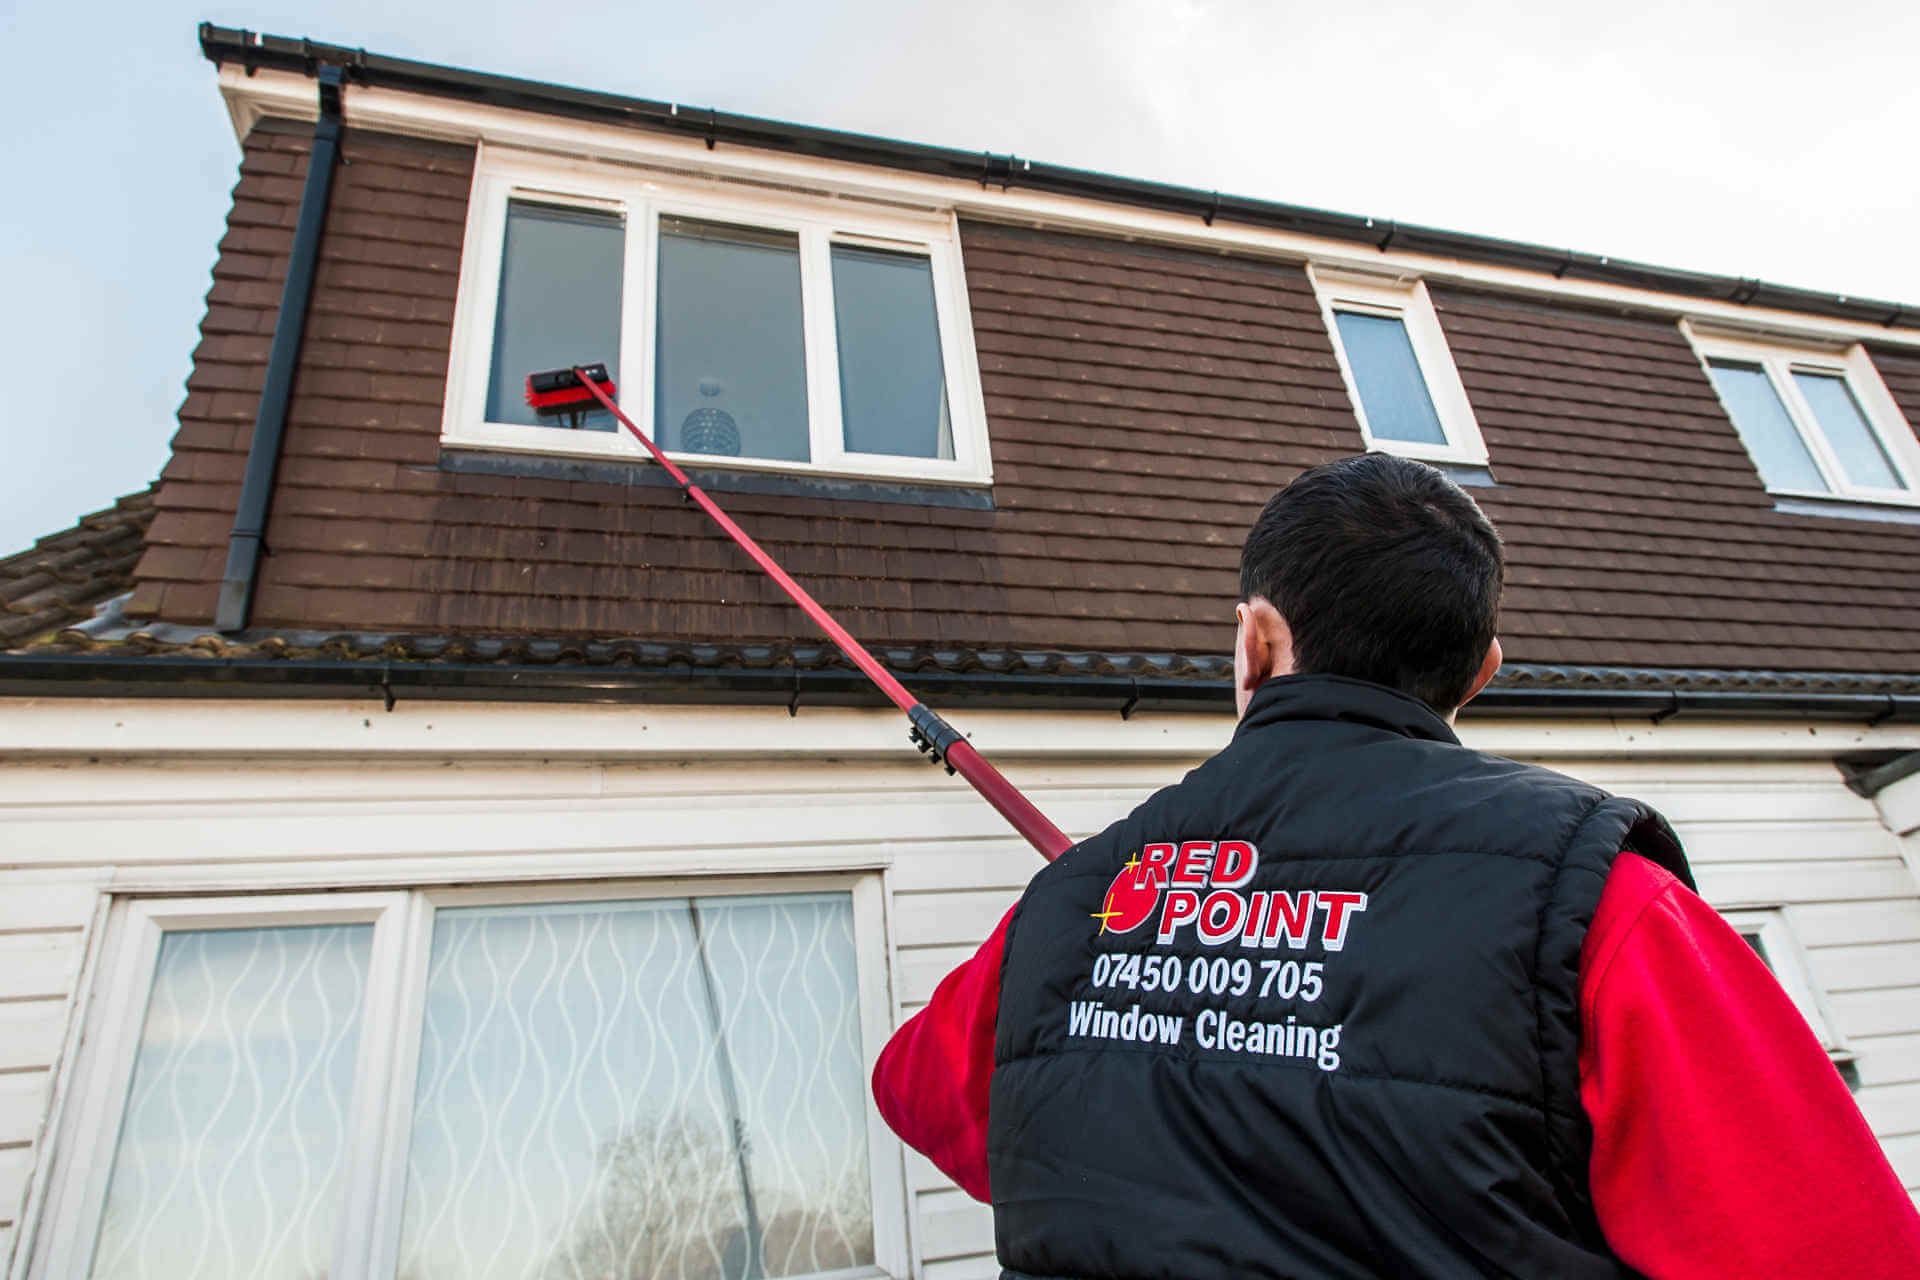 window-cleaners-in-south-london1